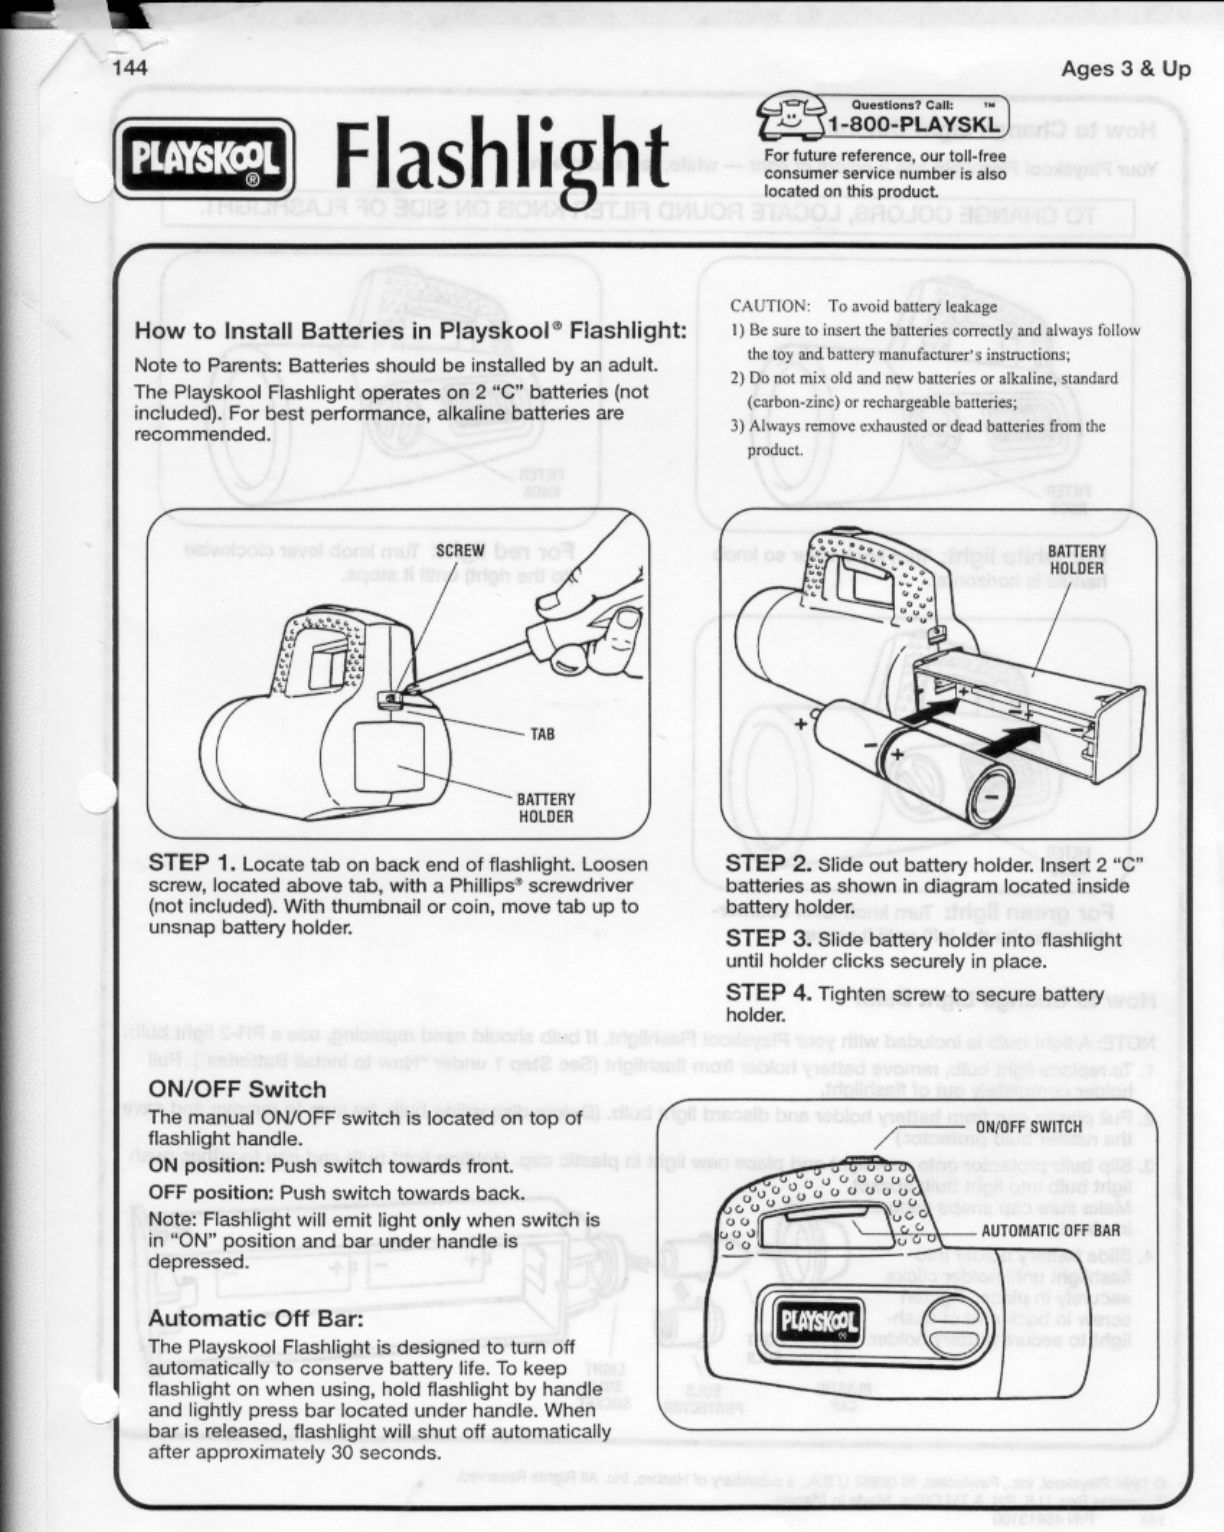 Playskool home safety product flashlight user guide manualsonline playskool flashlight home safety product user manual publicscrutiny Choice Image